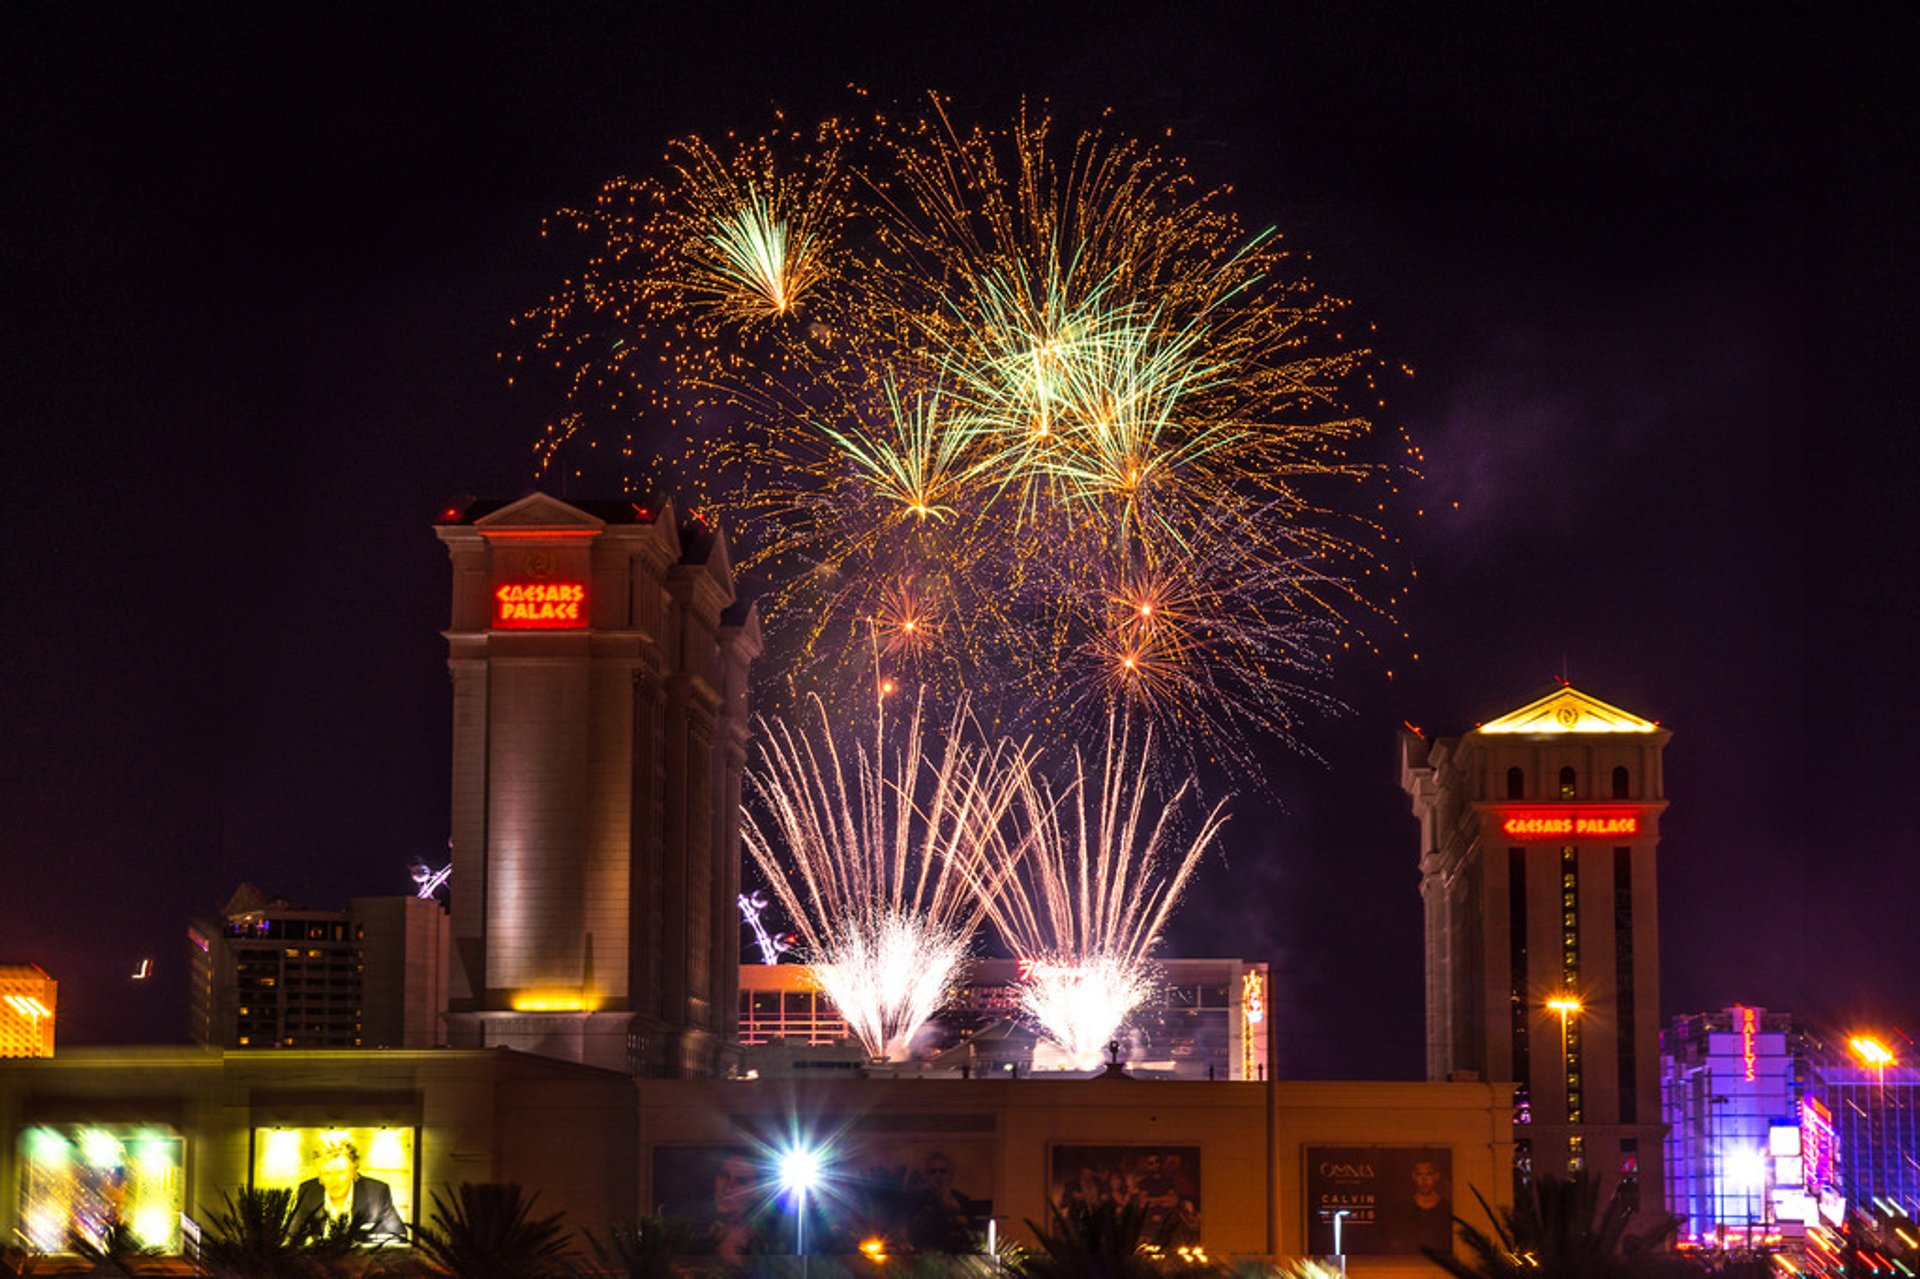 4th of July fireworks at Caesars Palace in Las Vegas 2019